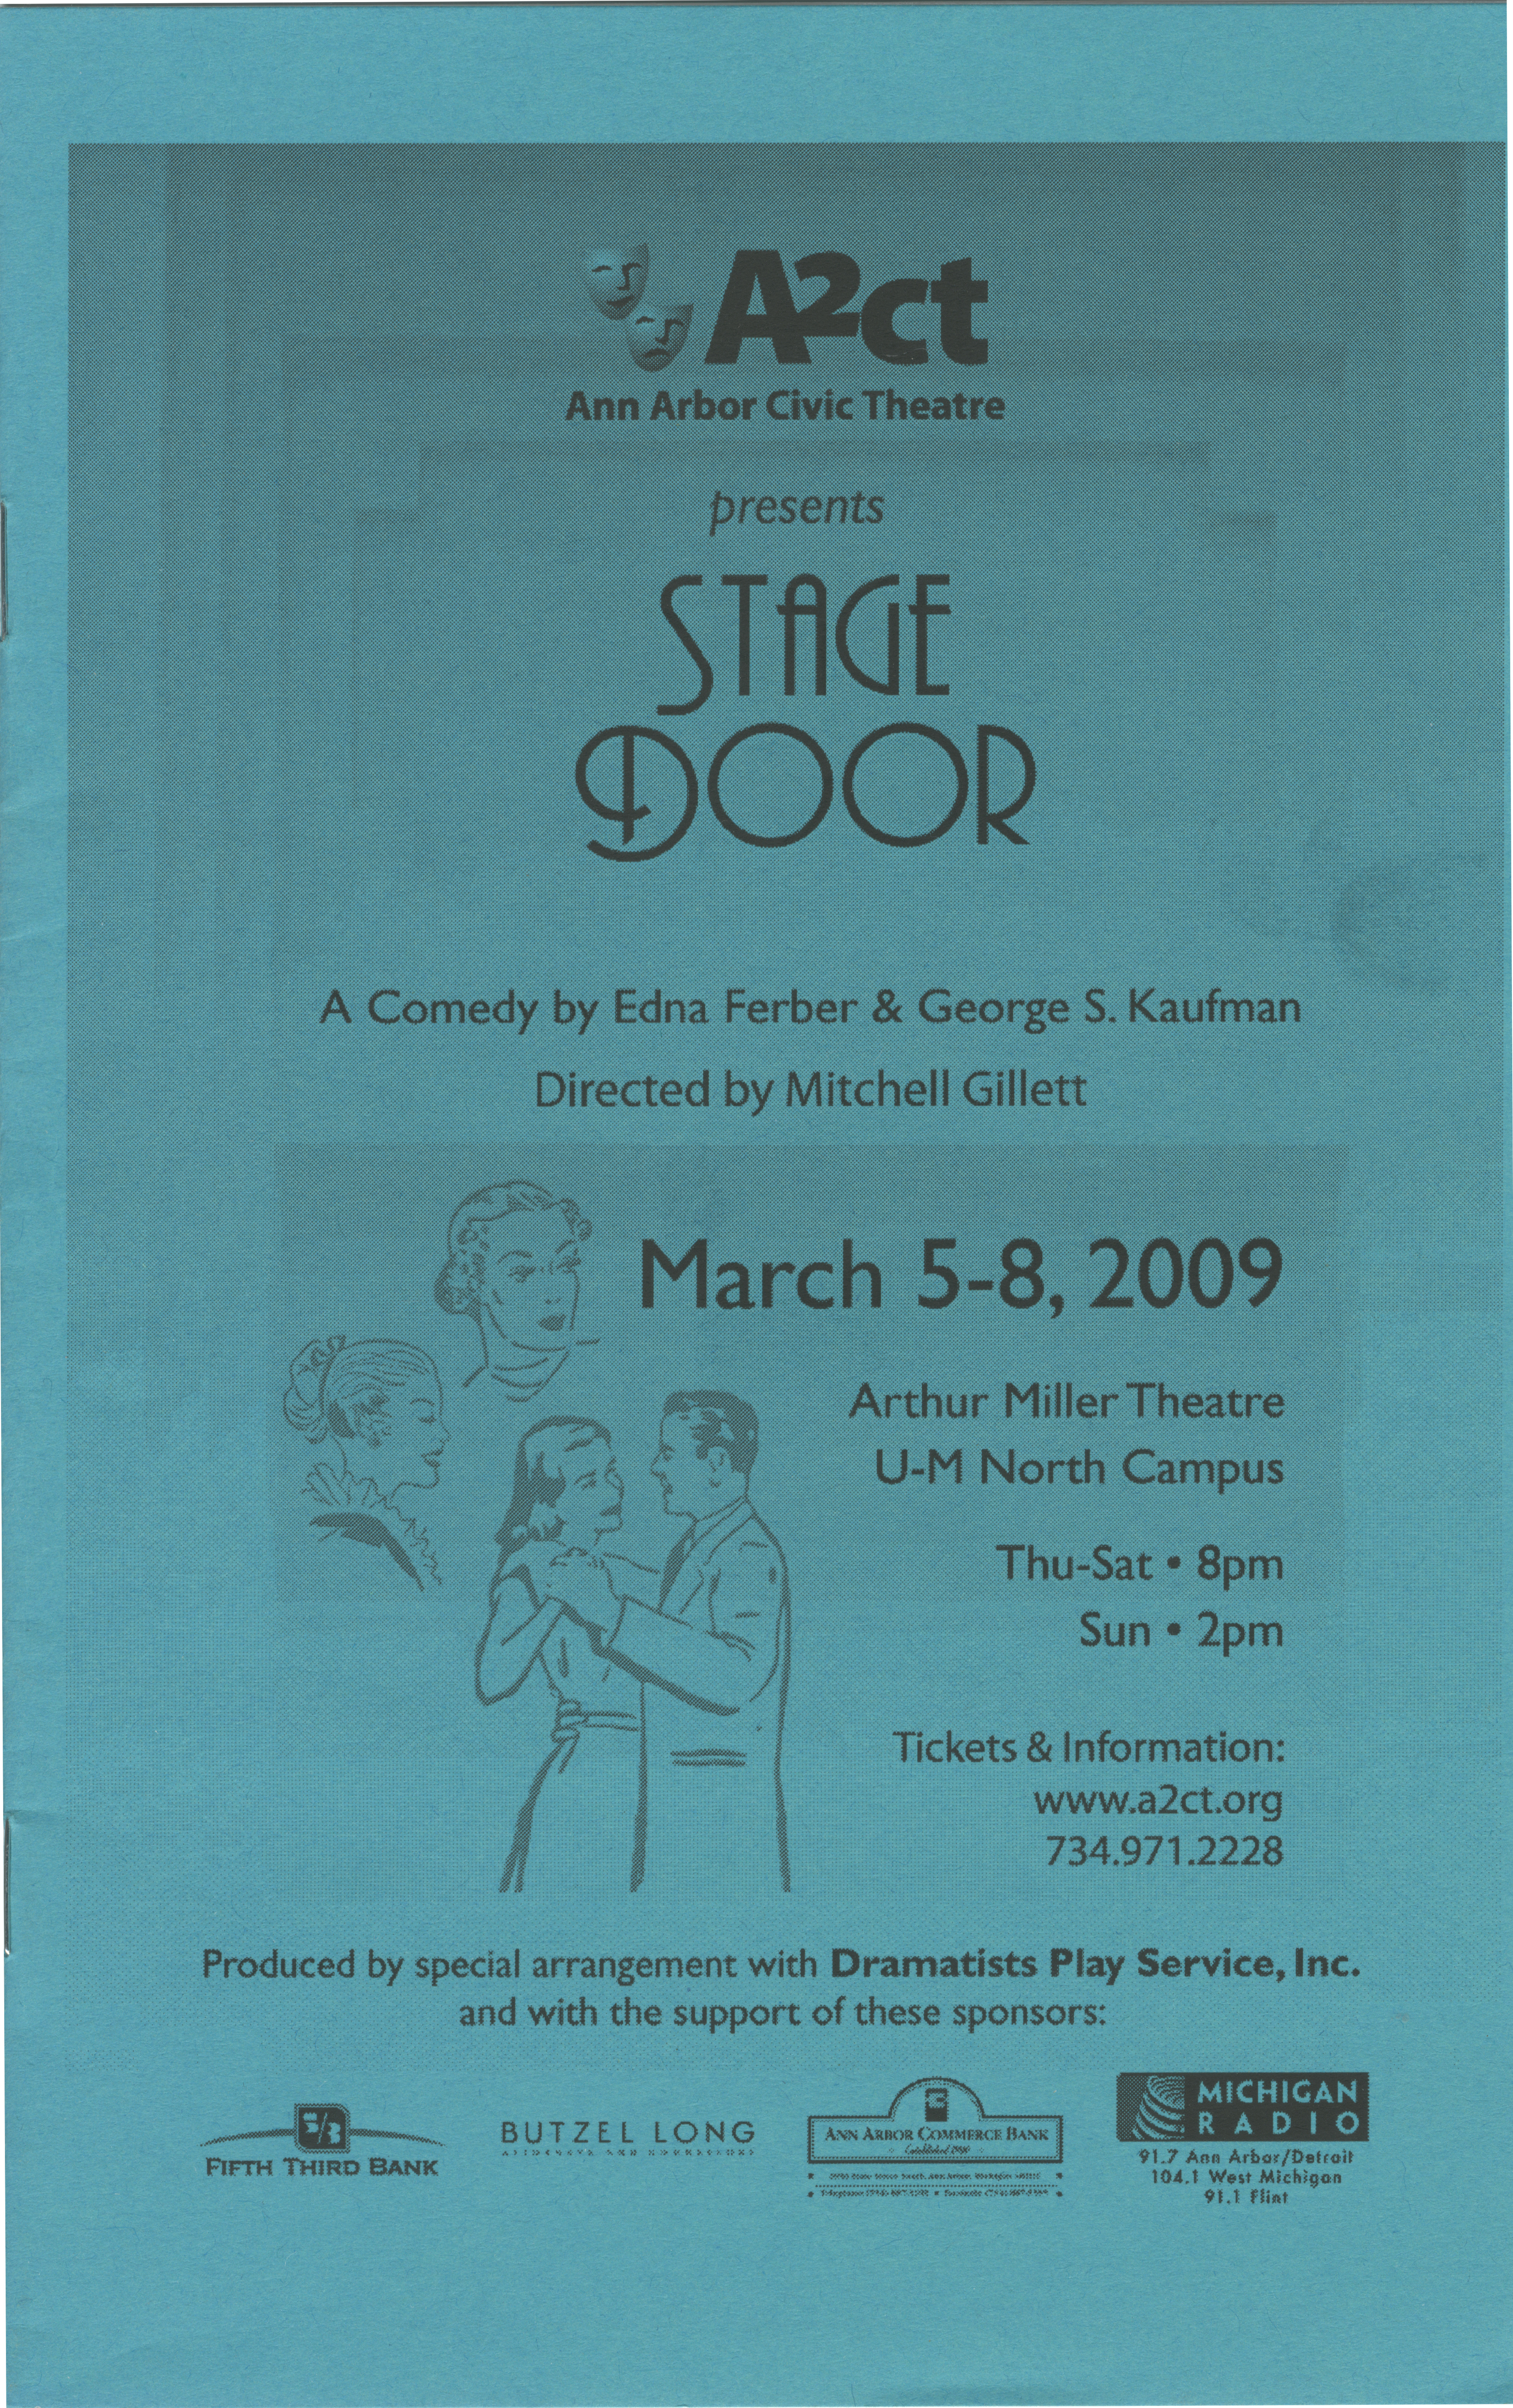 Ann Arbor Civic Theatre Program: Stage Door, March 05, 2009 image